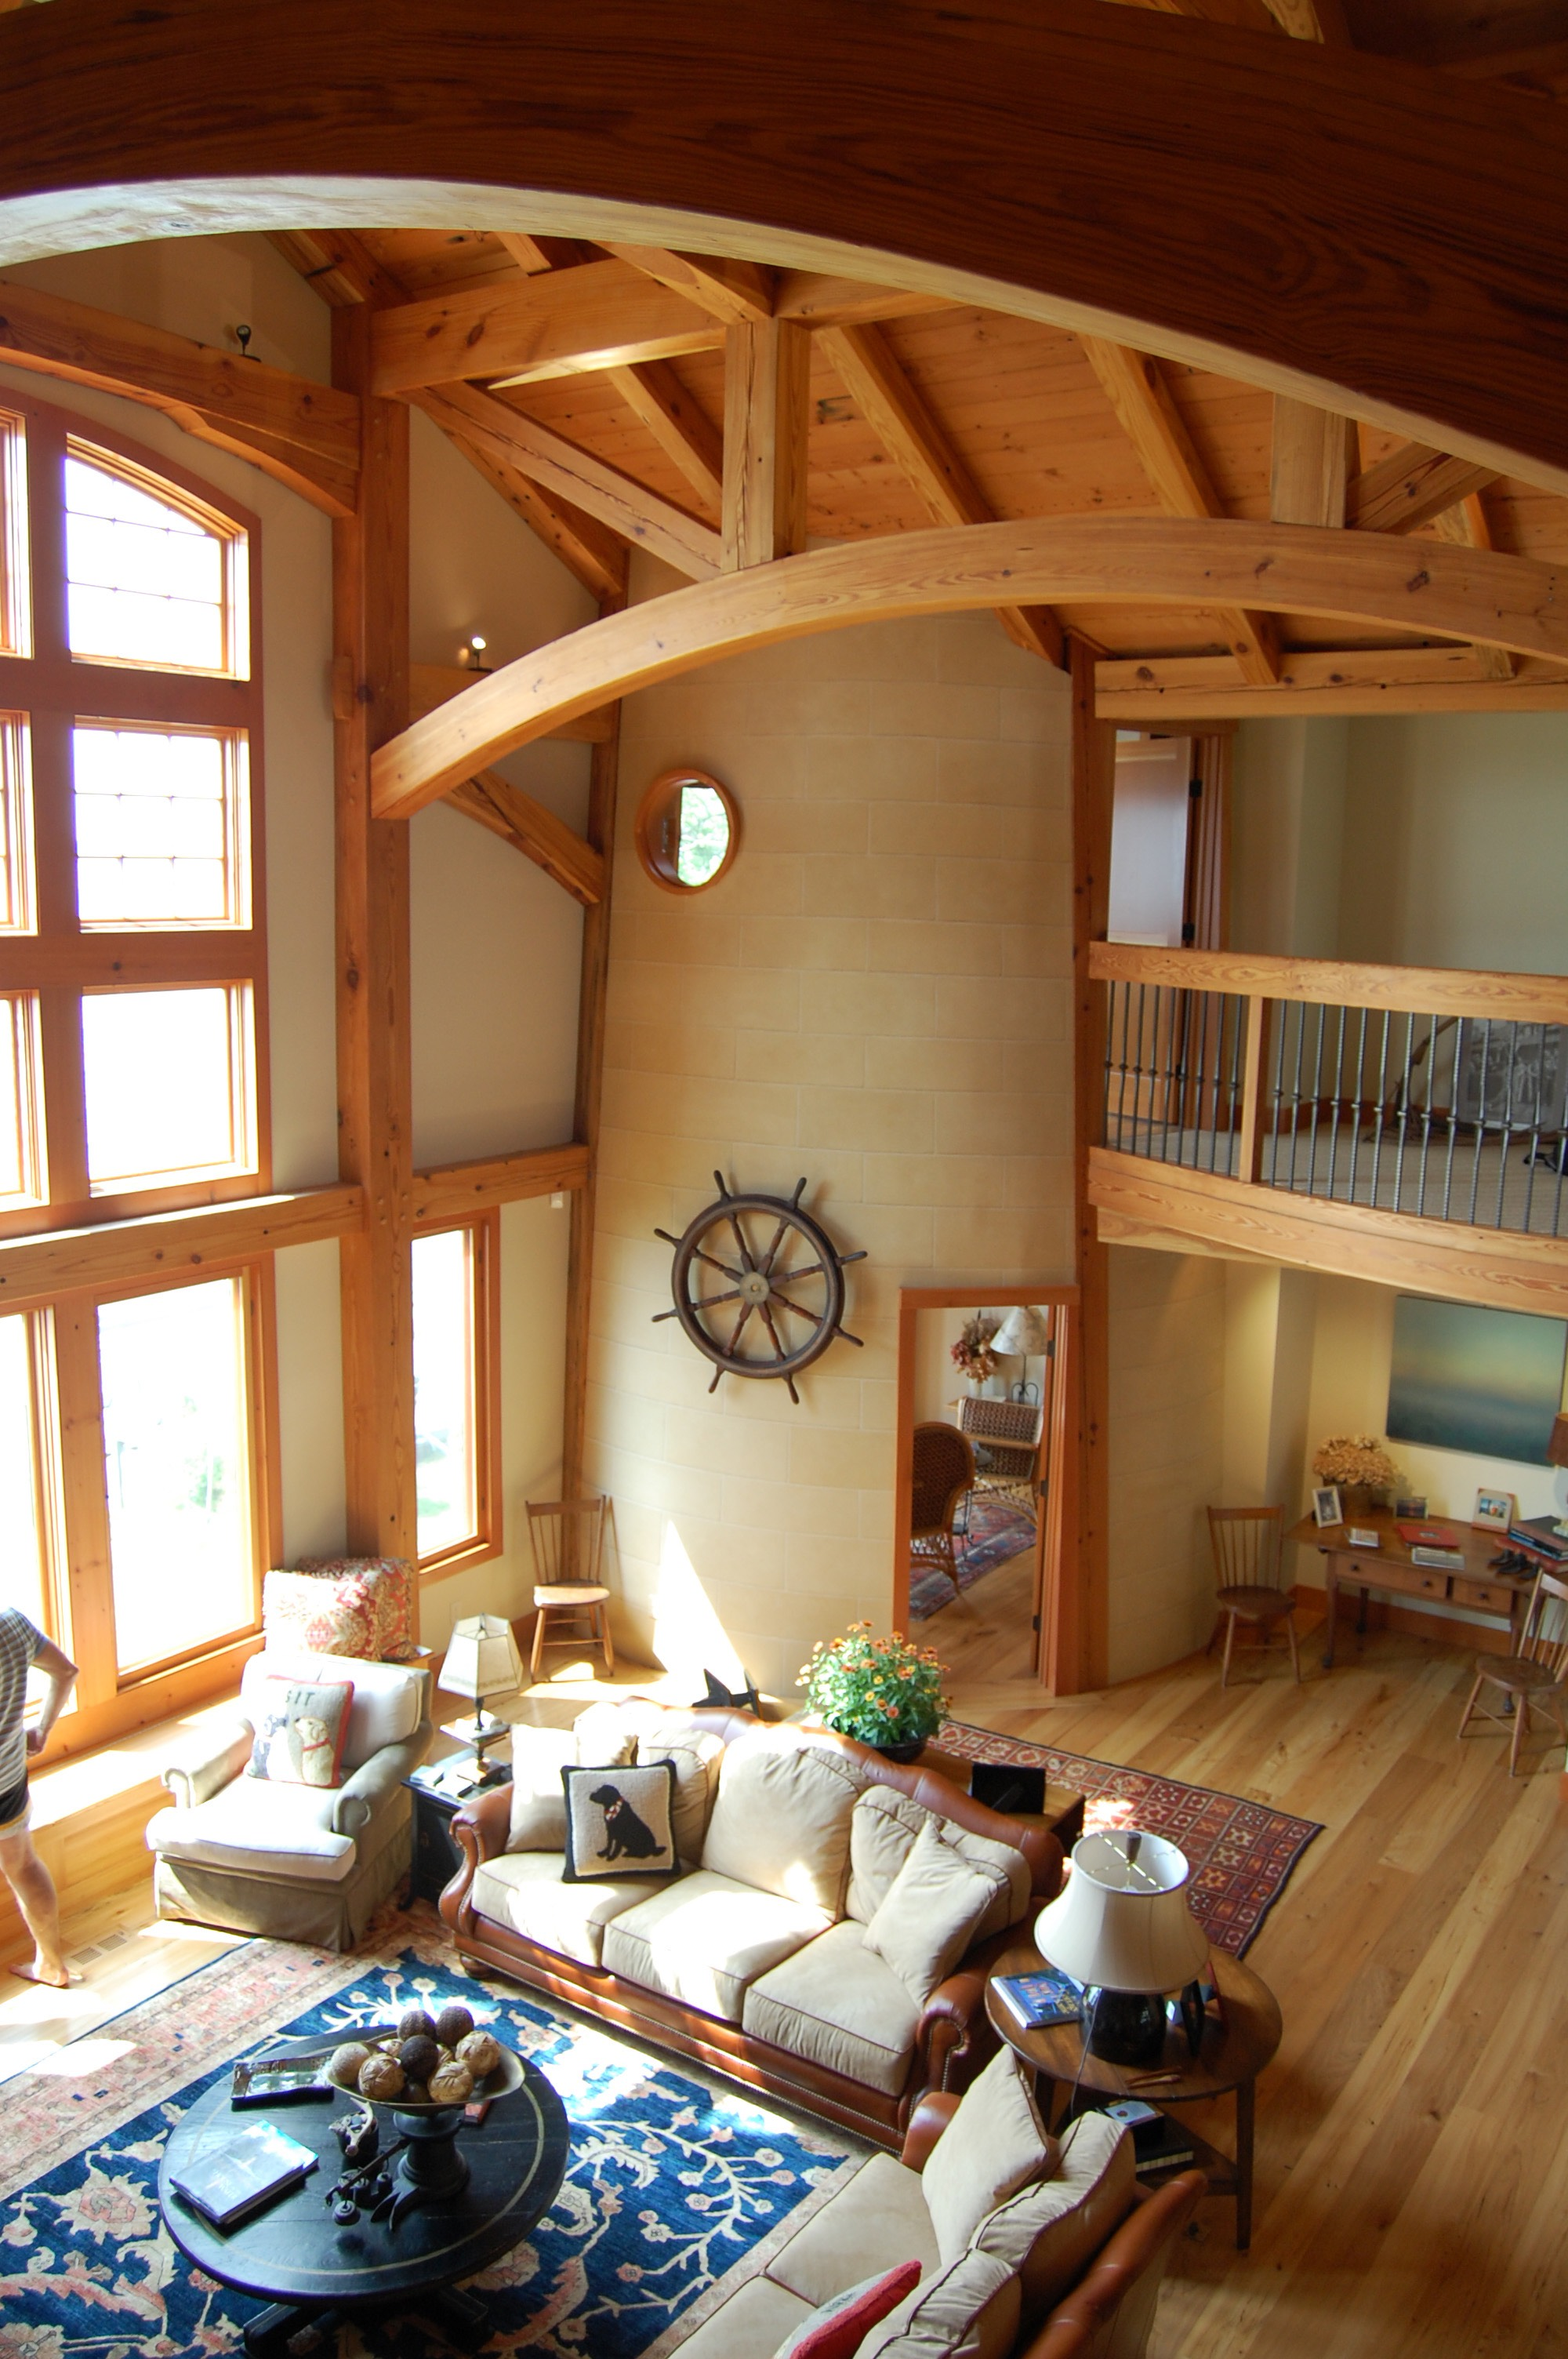 Within this timber frame home, a functioning, canted lighthouse constructed with Heart Pine timbers overlooks a large lake.